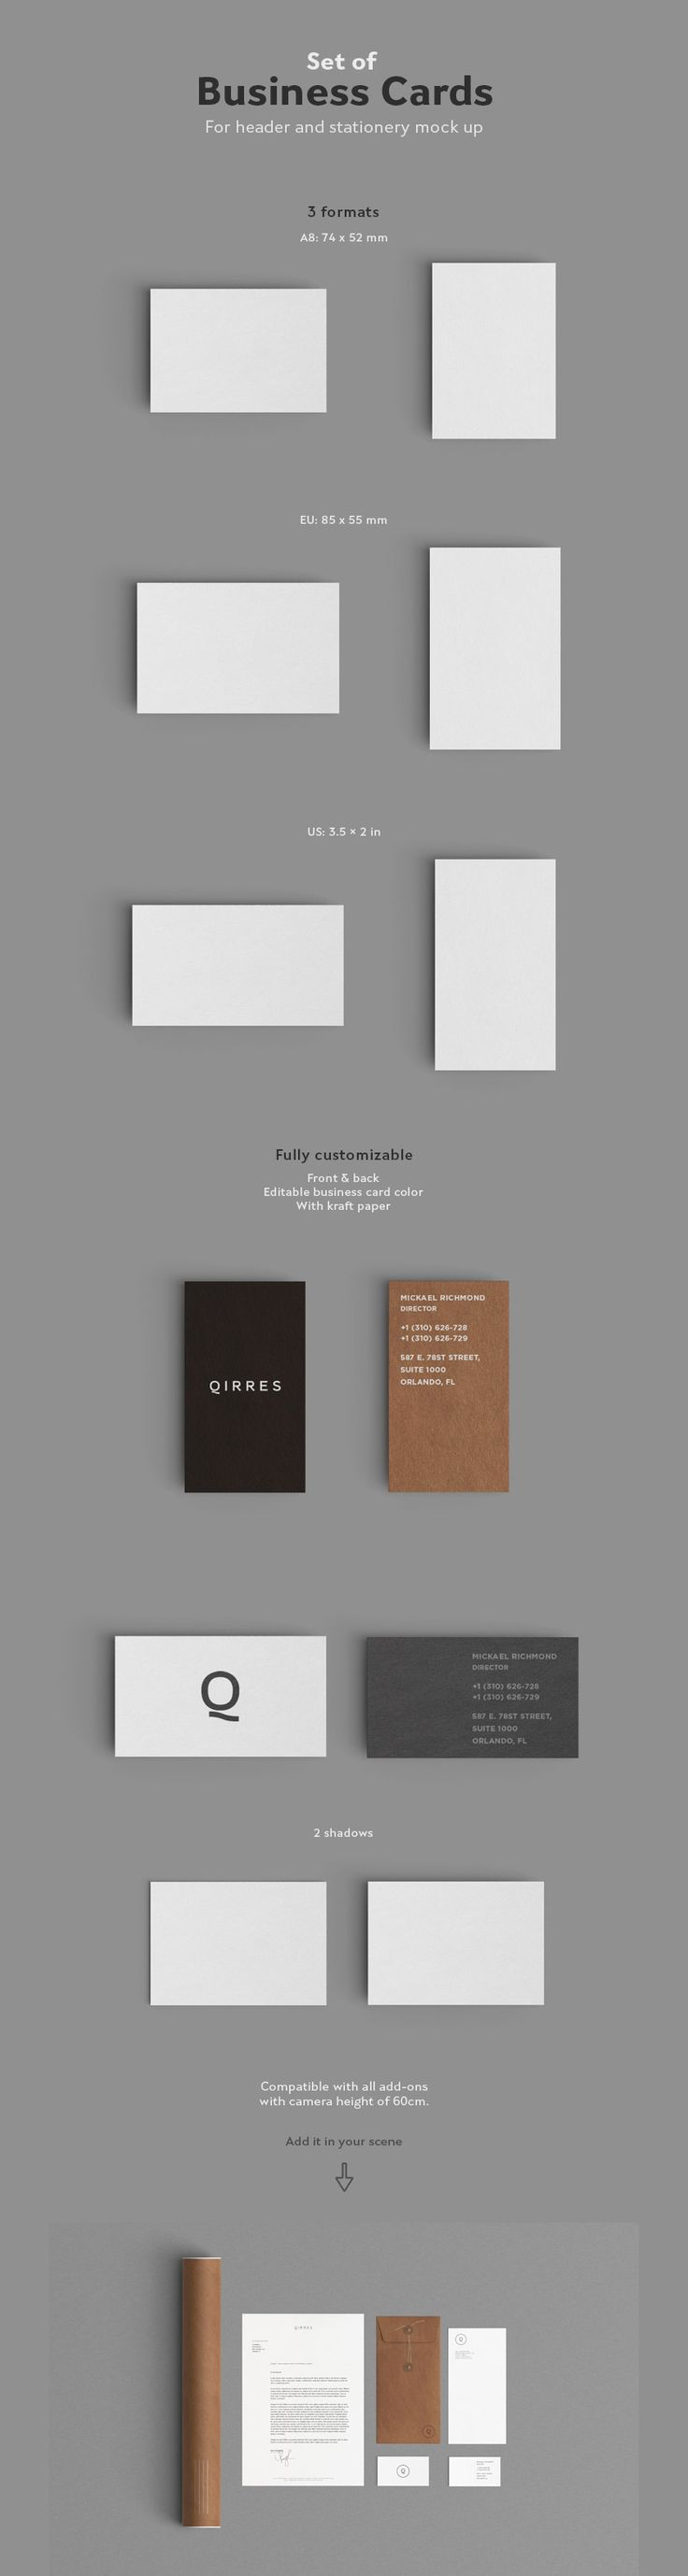 Best 25+ Business card size ideas on Pinterest | Standard business ...